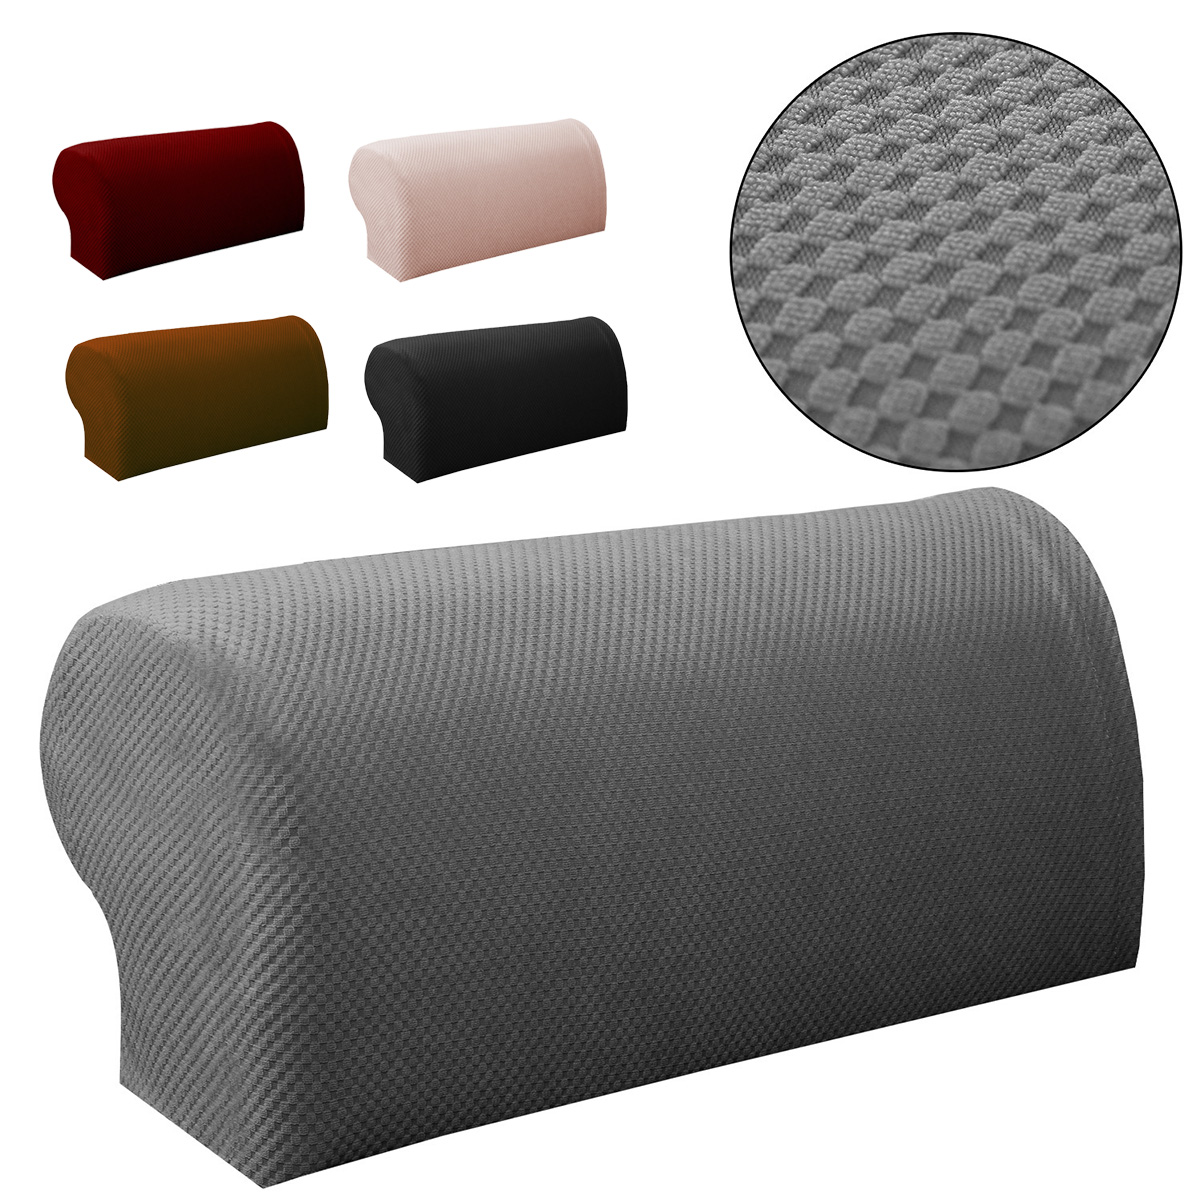 2pcs Premium Furniture Armrest Cover Sofa Couch Chair Arm